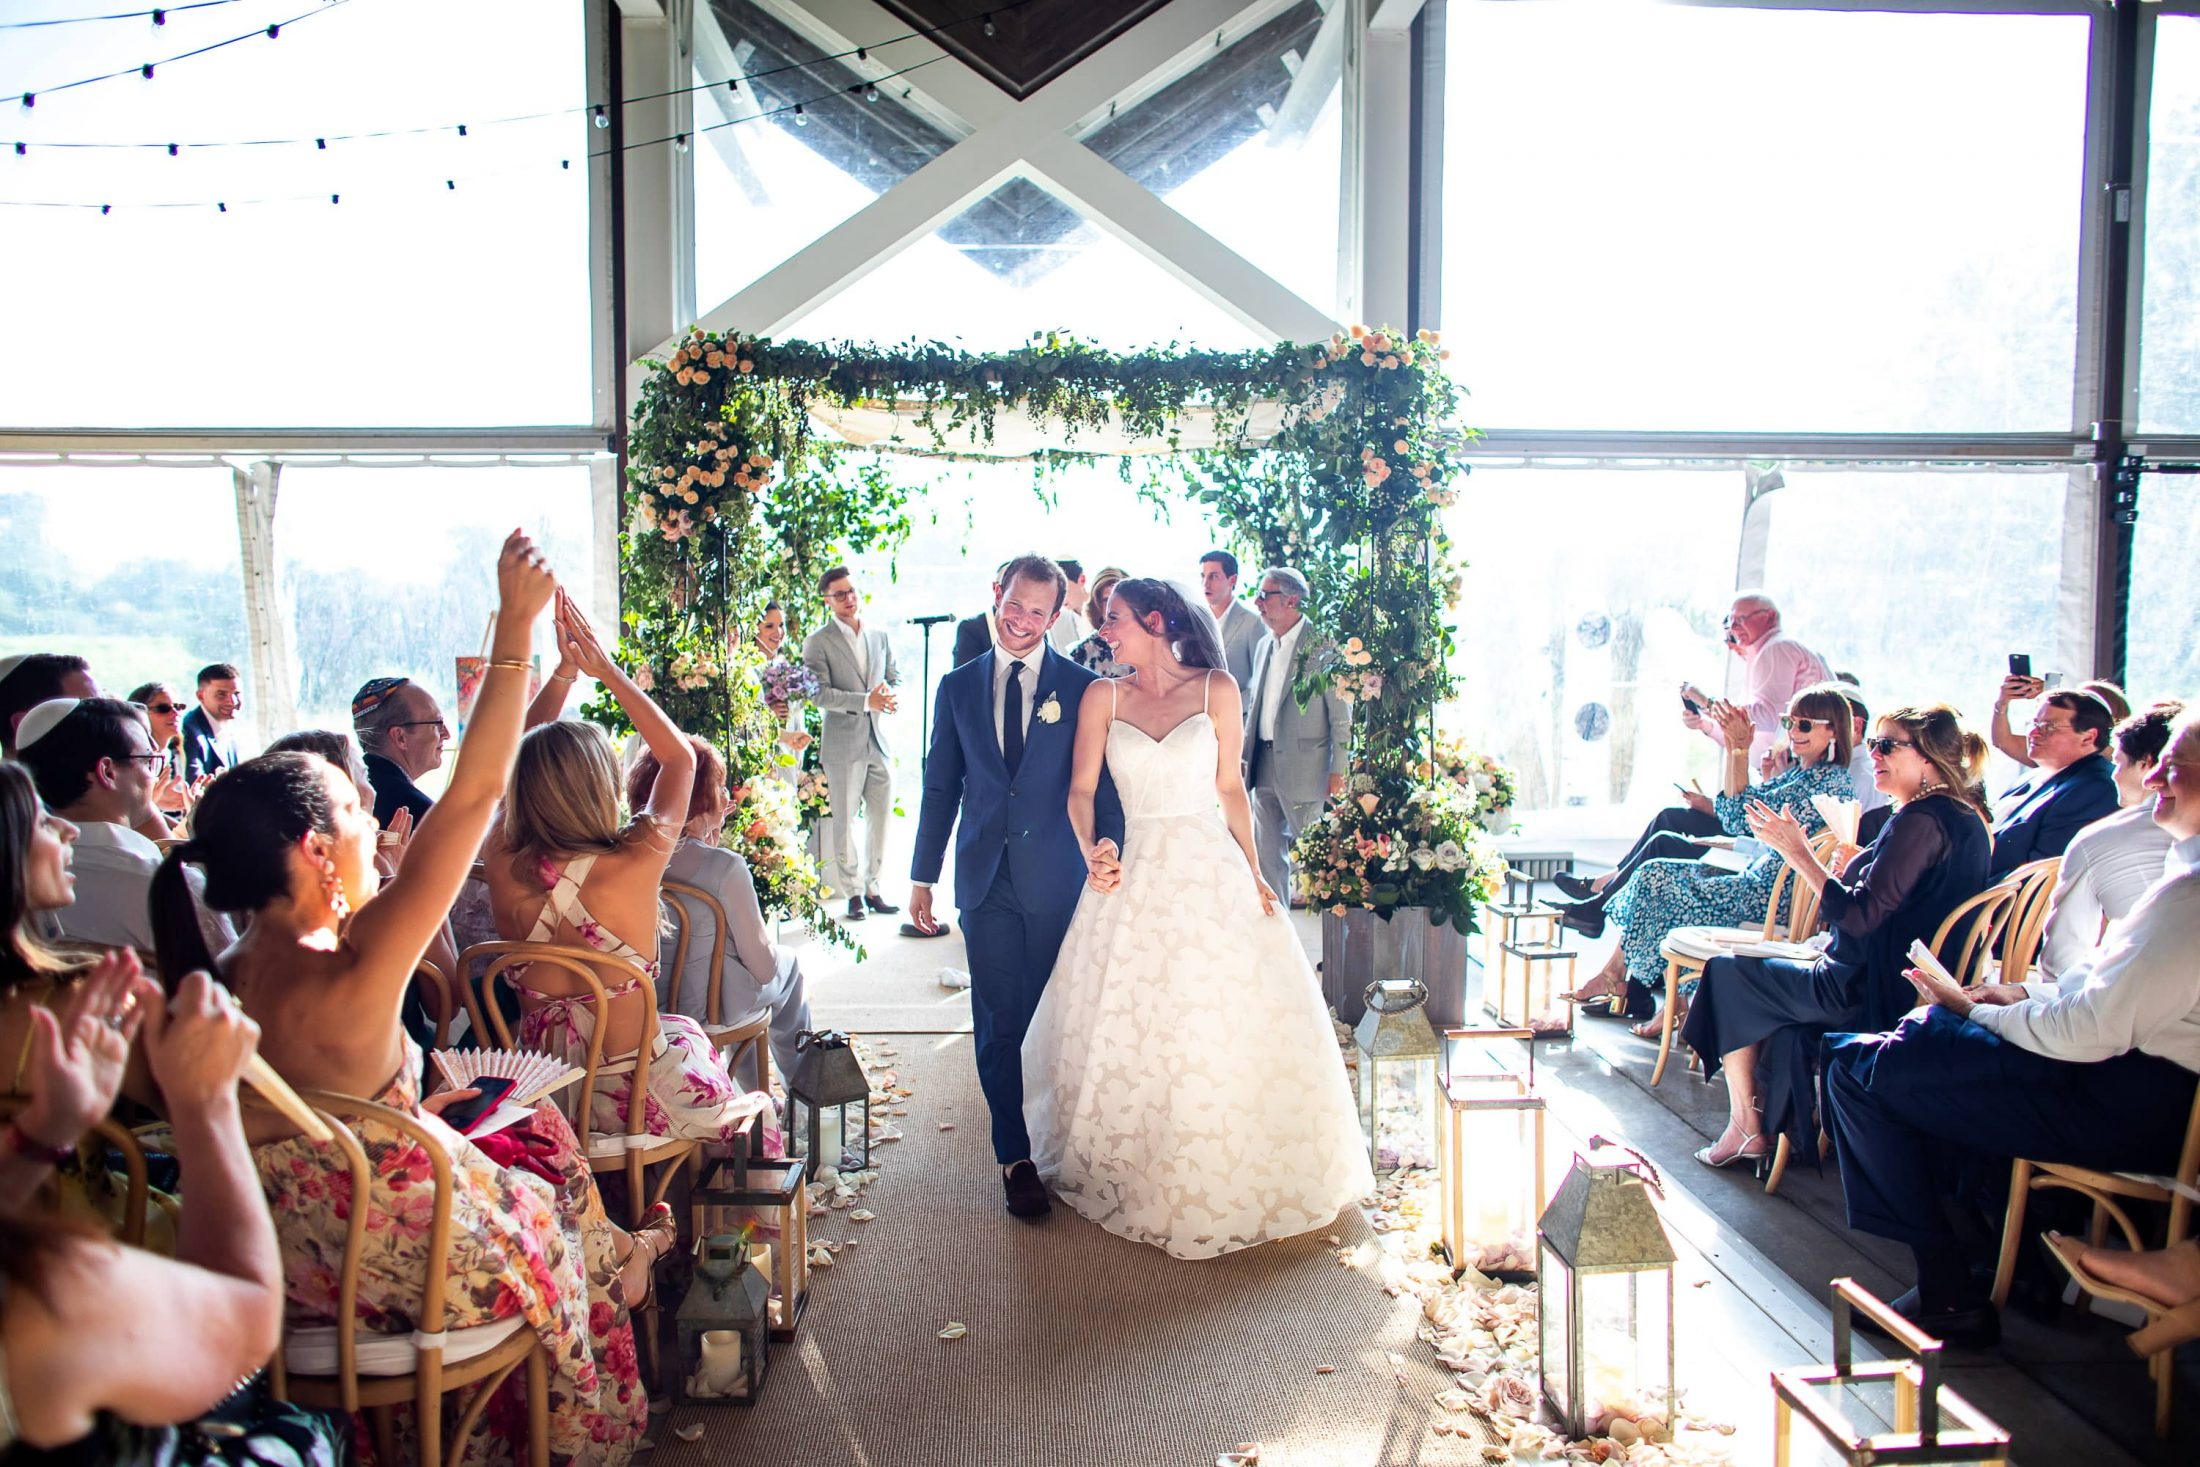 Newlyweds at Jewish ceremony at this Hamptons wedding weekend held at The Parrish Museum | Photo by Roey Yohai Studio